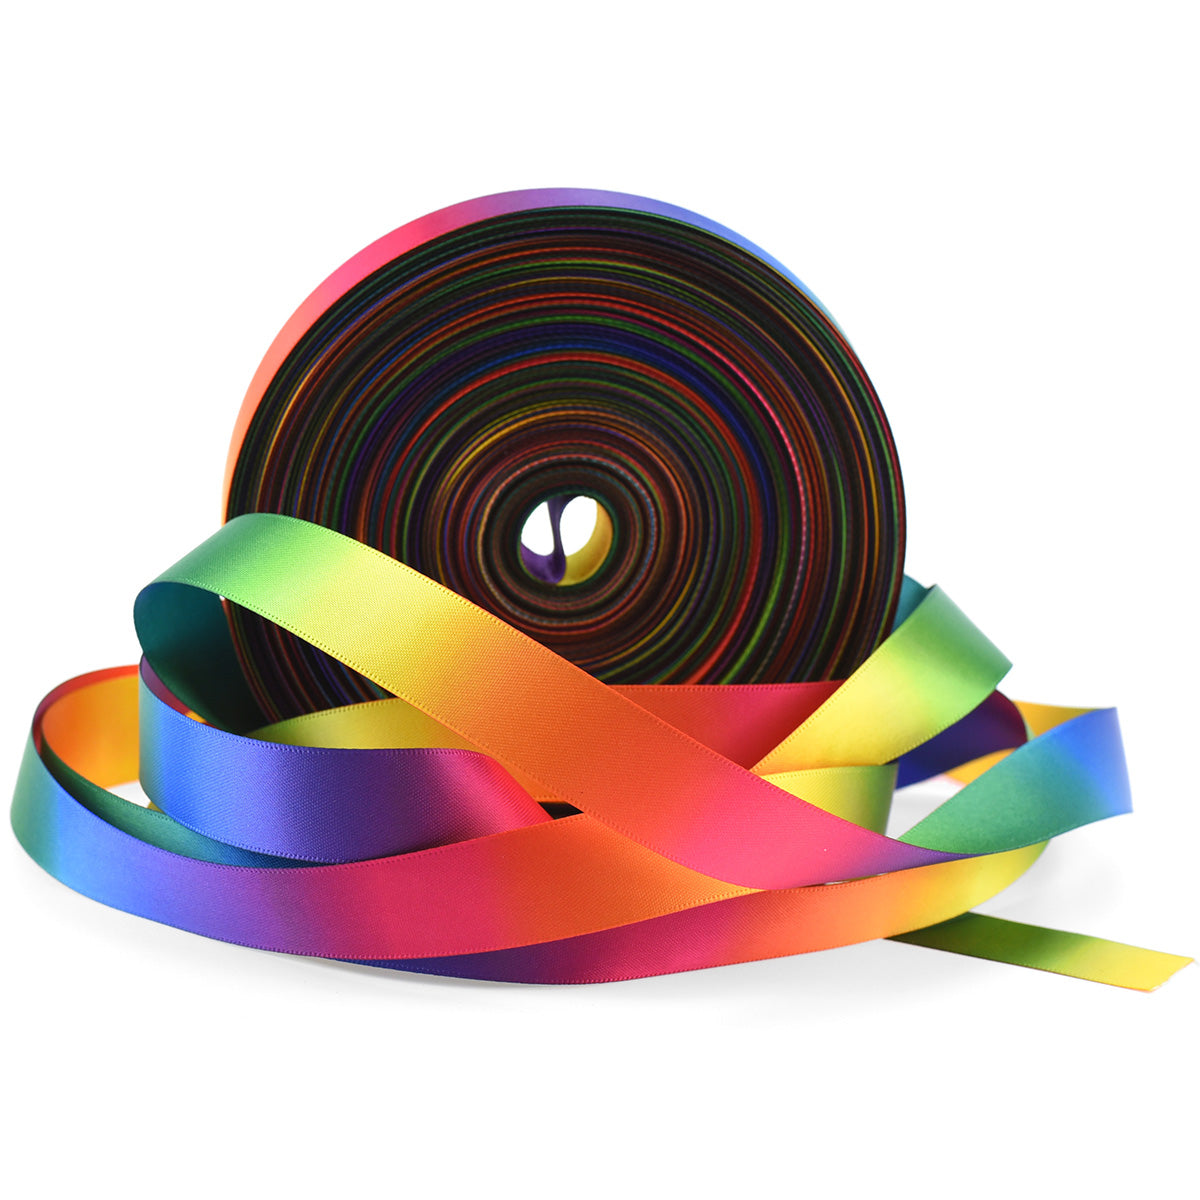 25mm [45 metres/50 Yards] Rainbow Gradient Polyester Ribbon | Party Festive Gift Wrap Scrapbooking Decoration